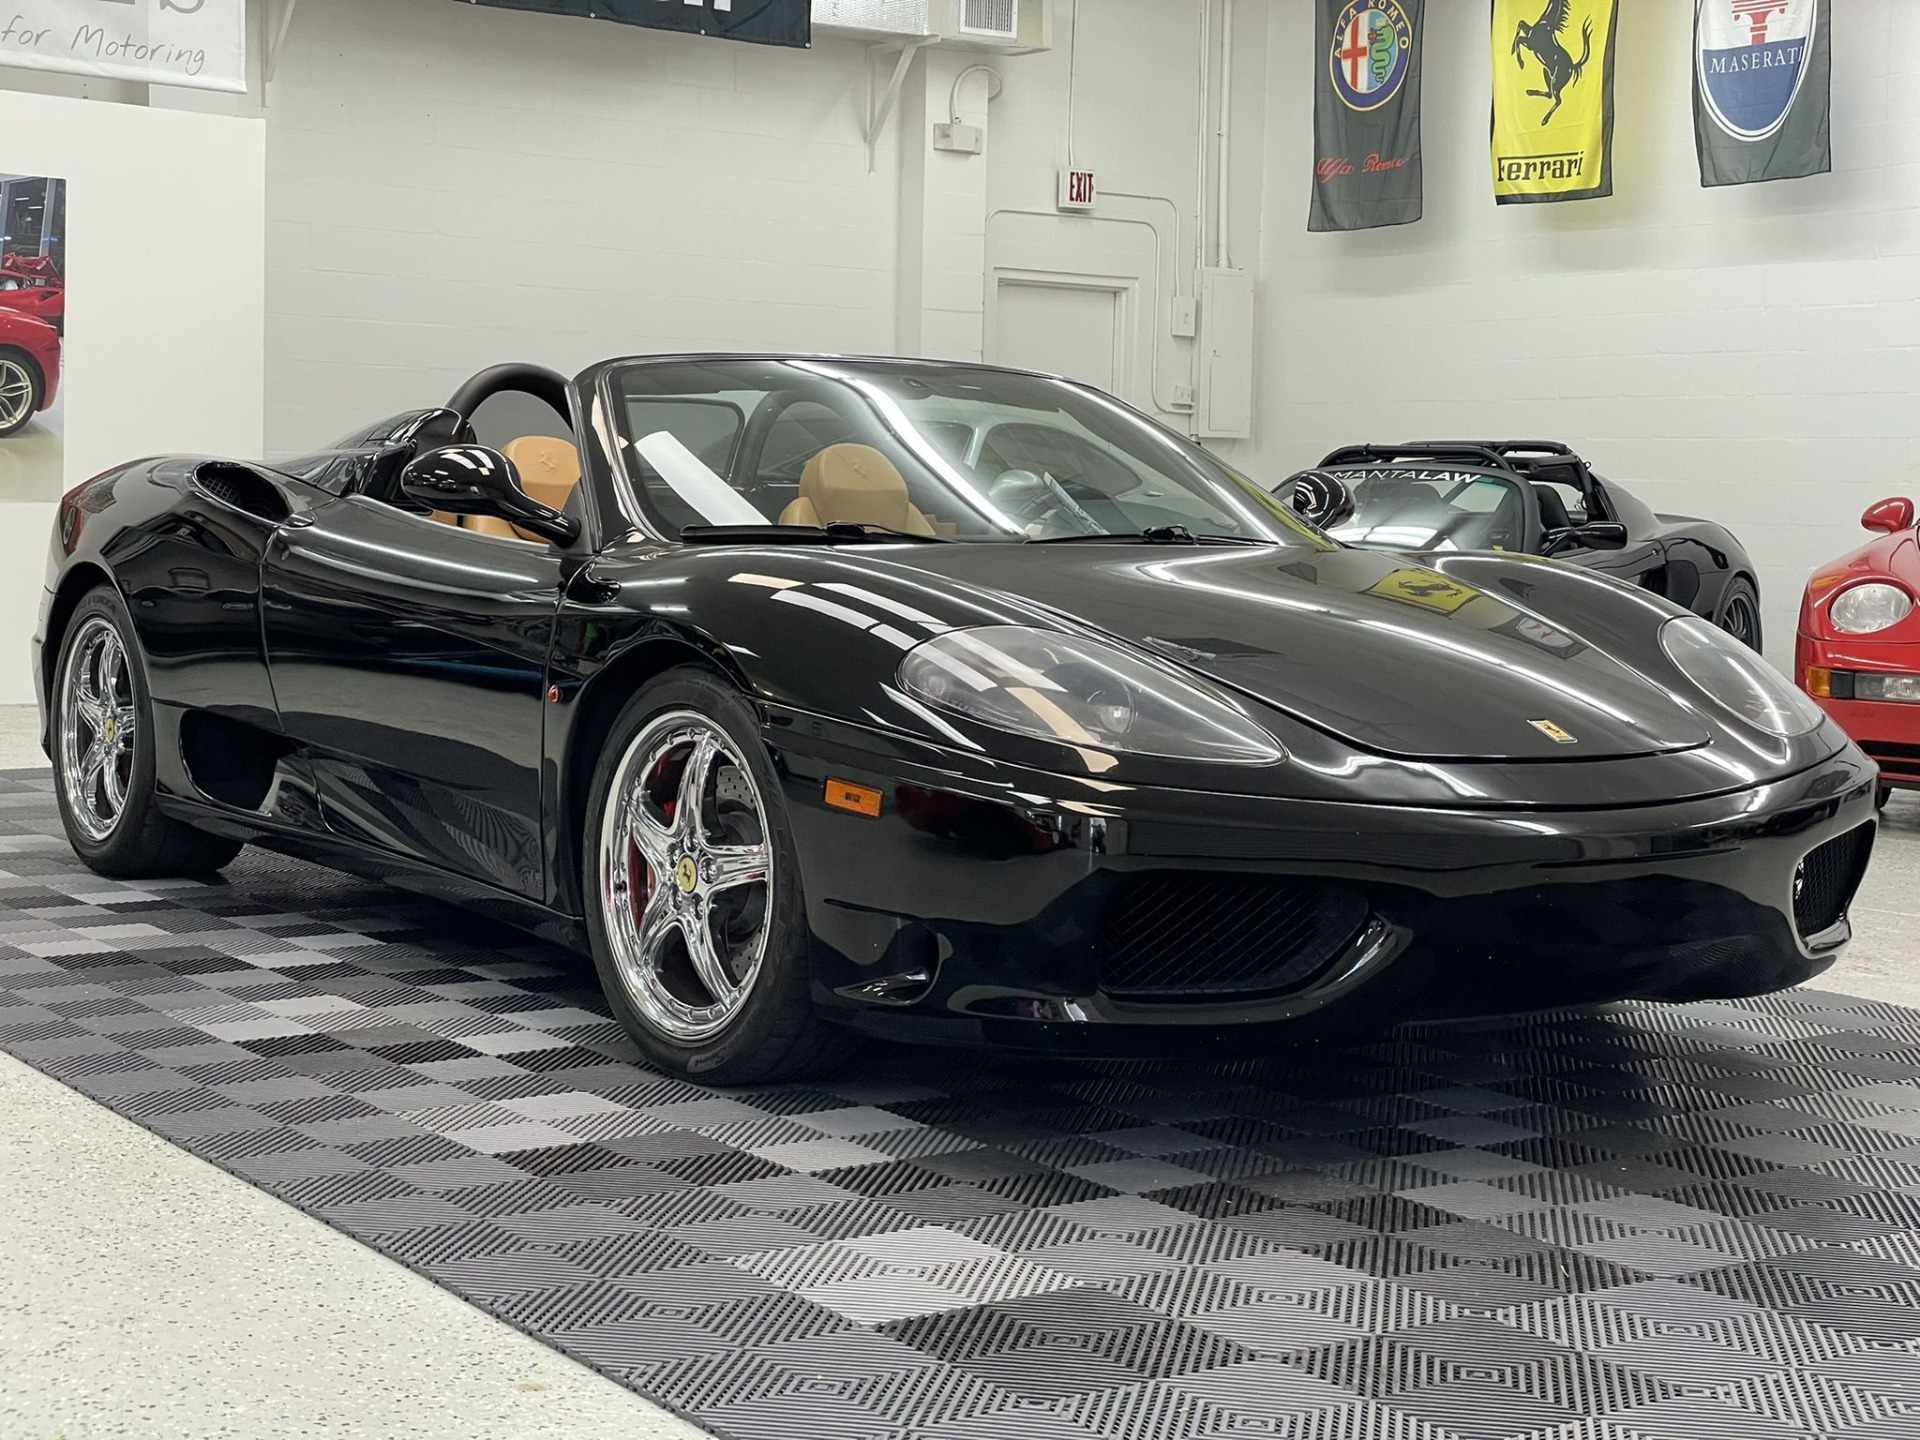 Used 2003 Ferrari 360 Convertible 2D Spider 3.6L V8 for sale $89,997 at Track and Field Motors in Safety Harbor FL